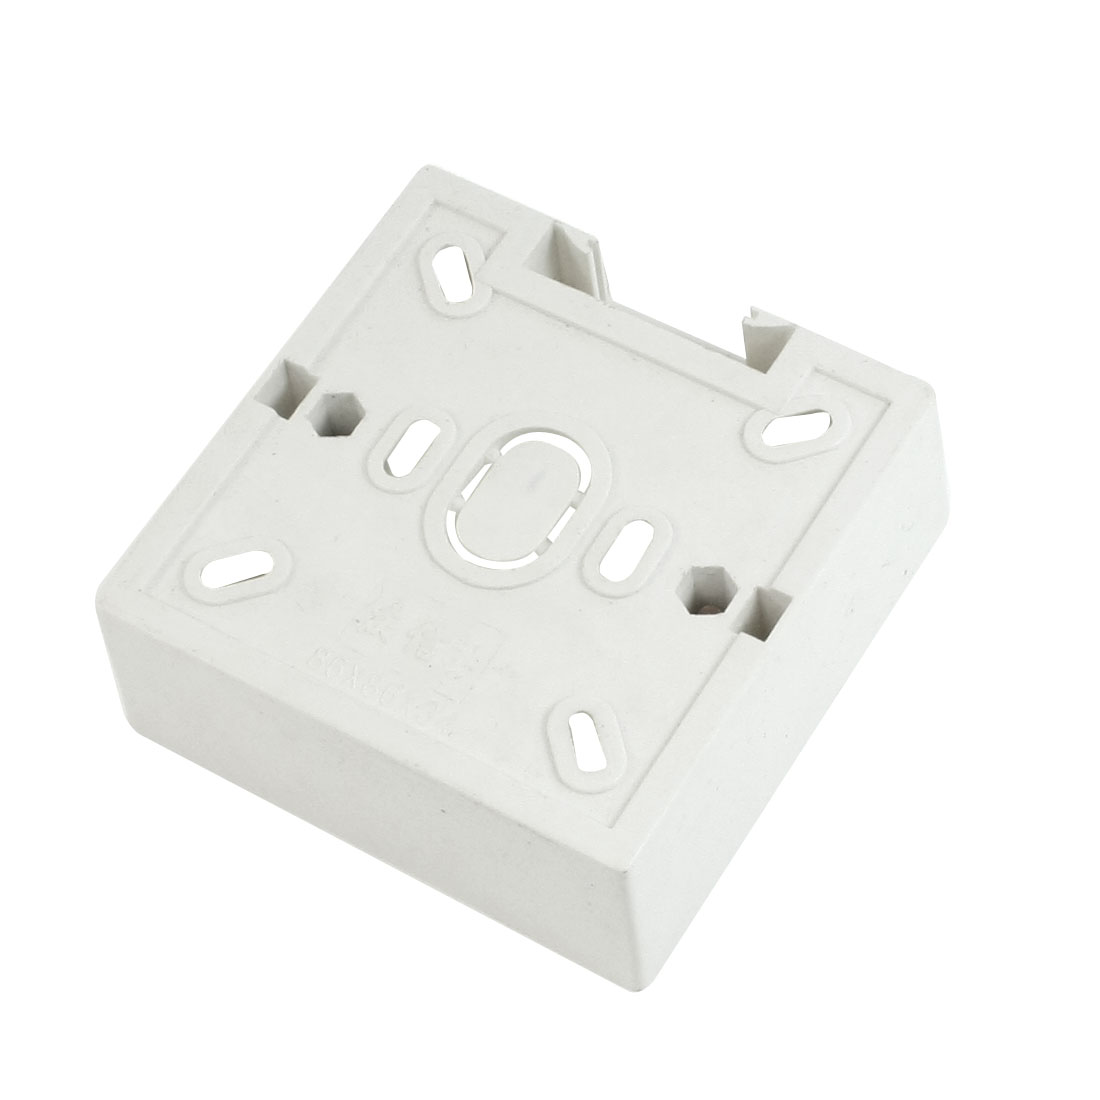 86mm x 86mm x 34mm Srew Faceplate Mounted White Plastic Back Box